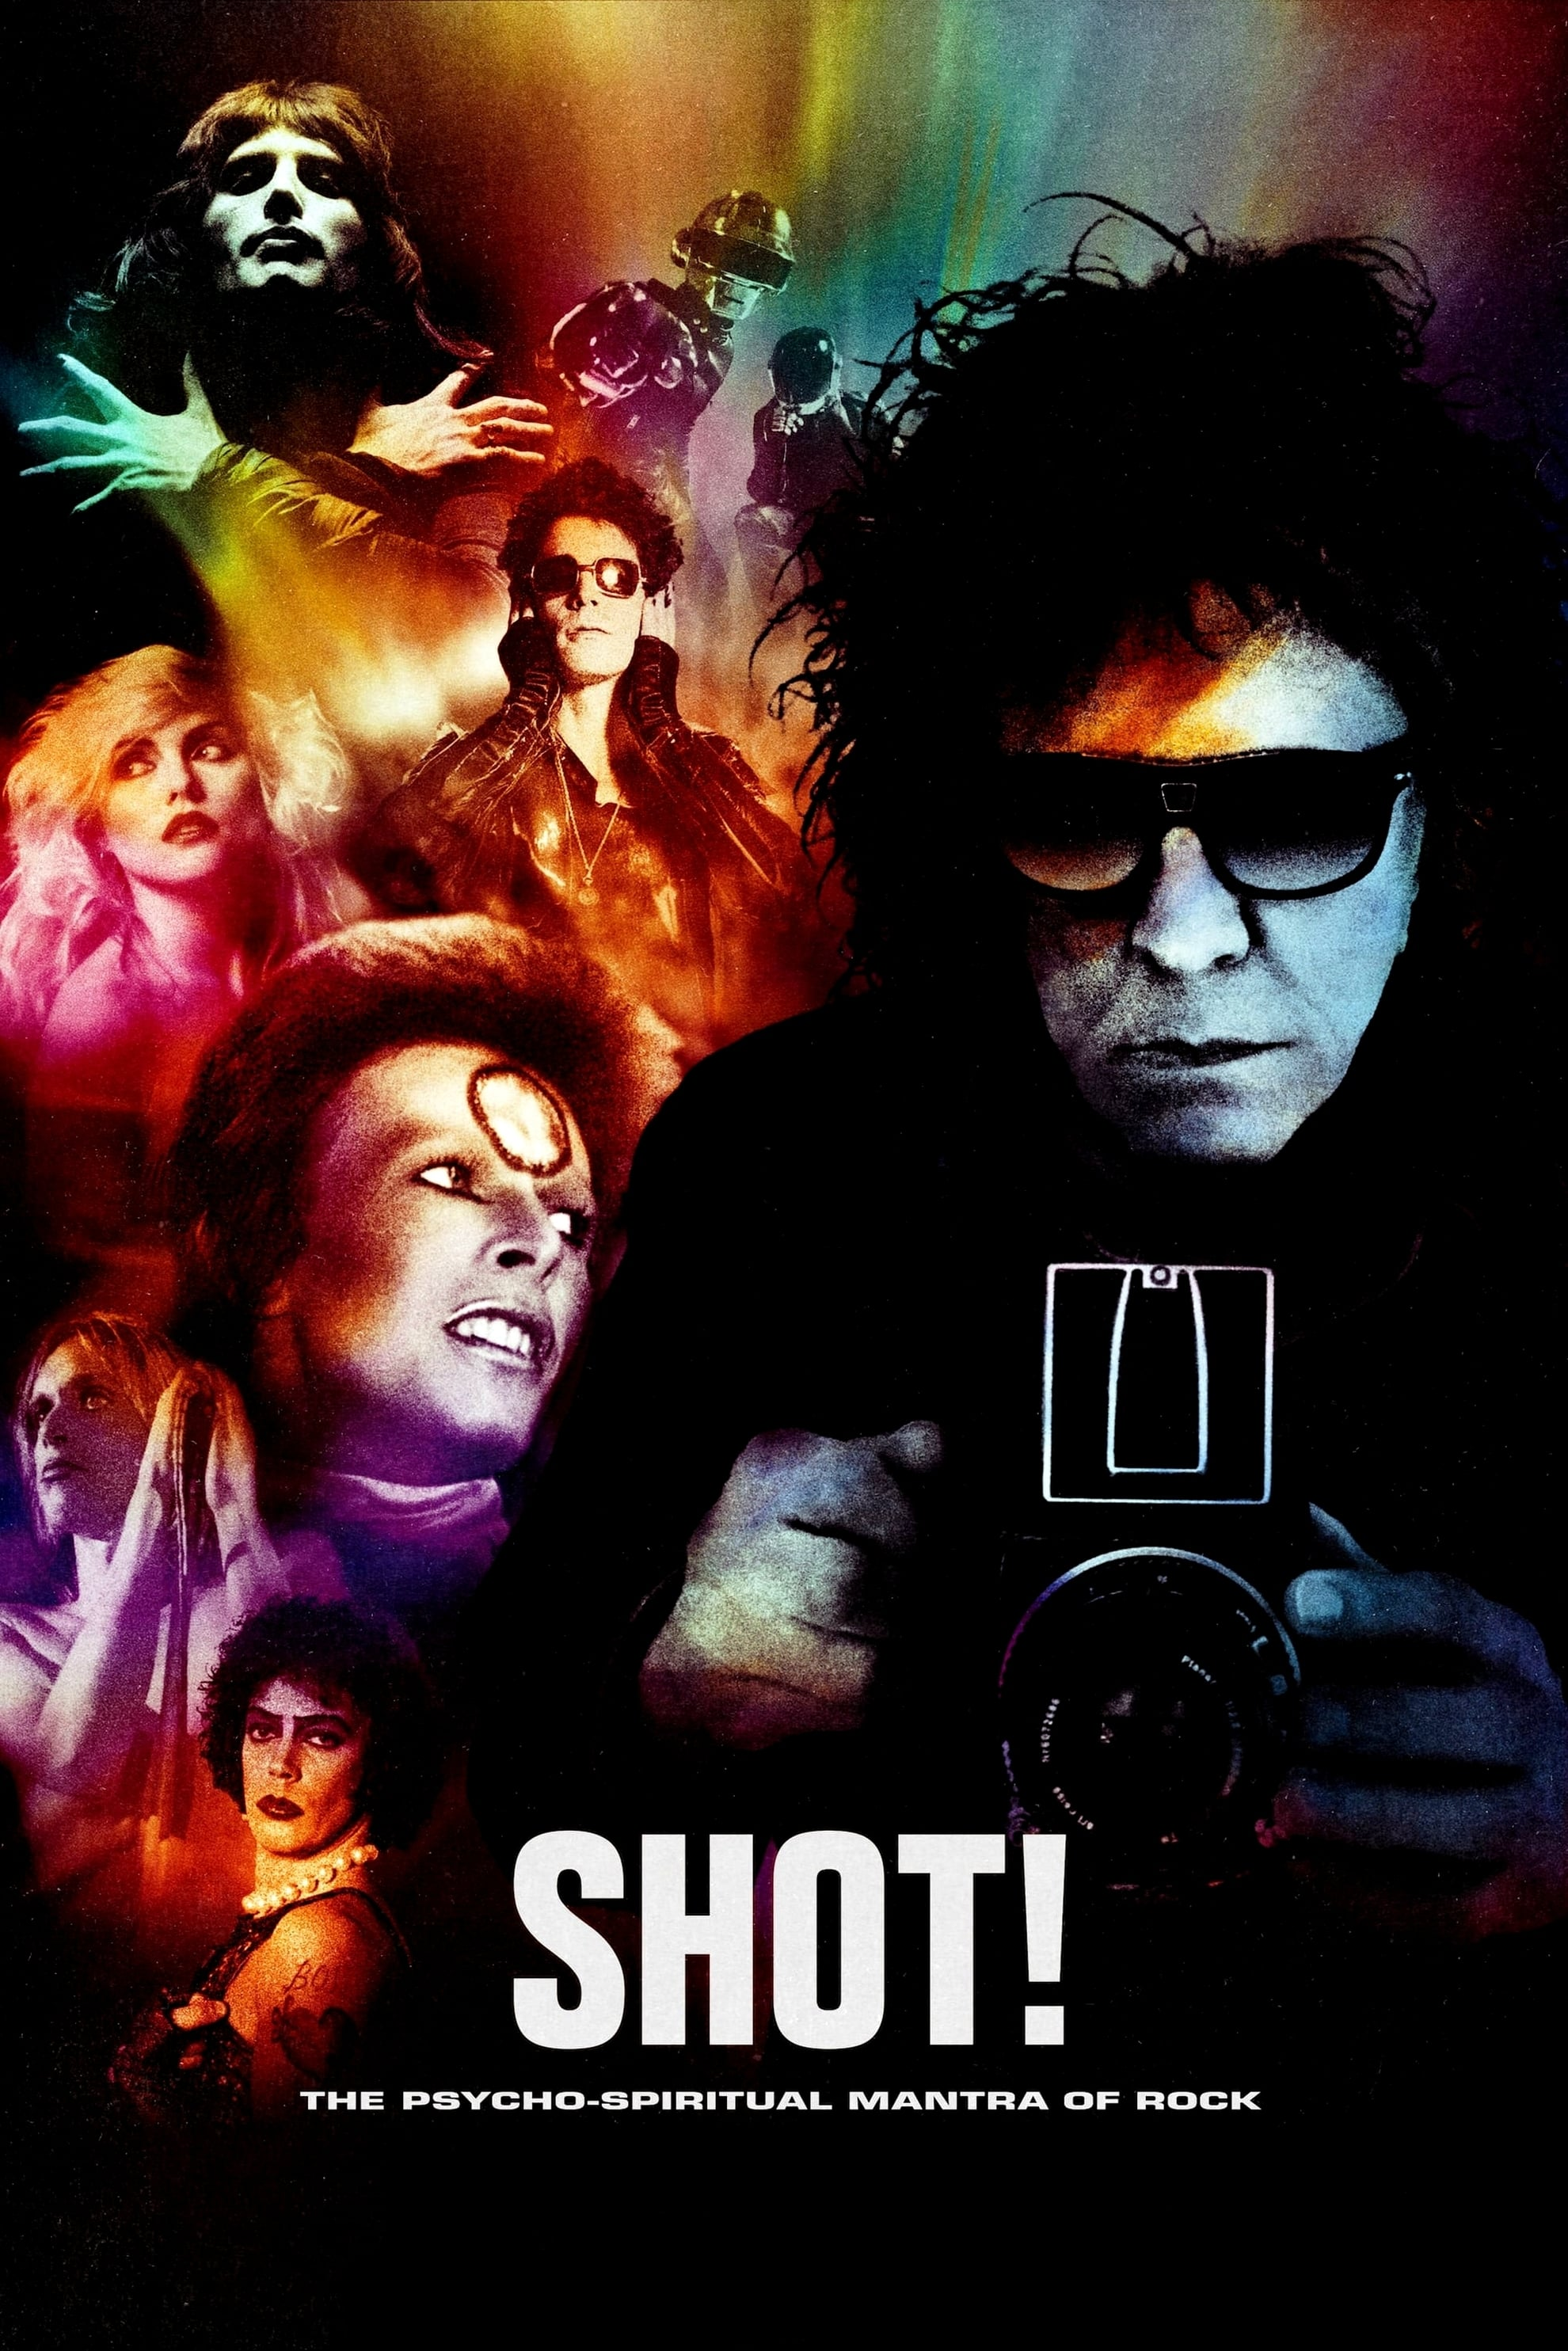 SHOT! The Psycho-Spiritual Mantra of Rock on FREECABLE TV